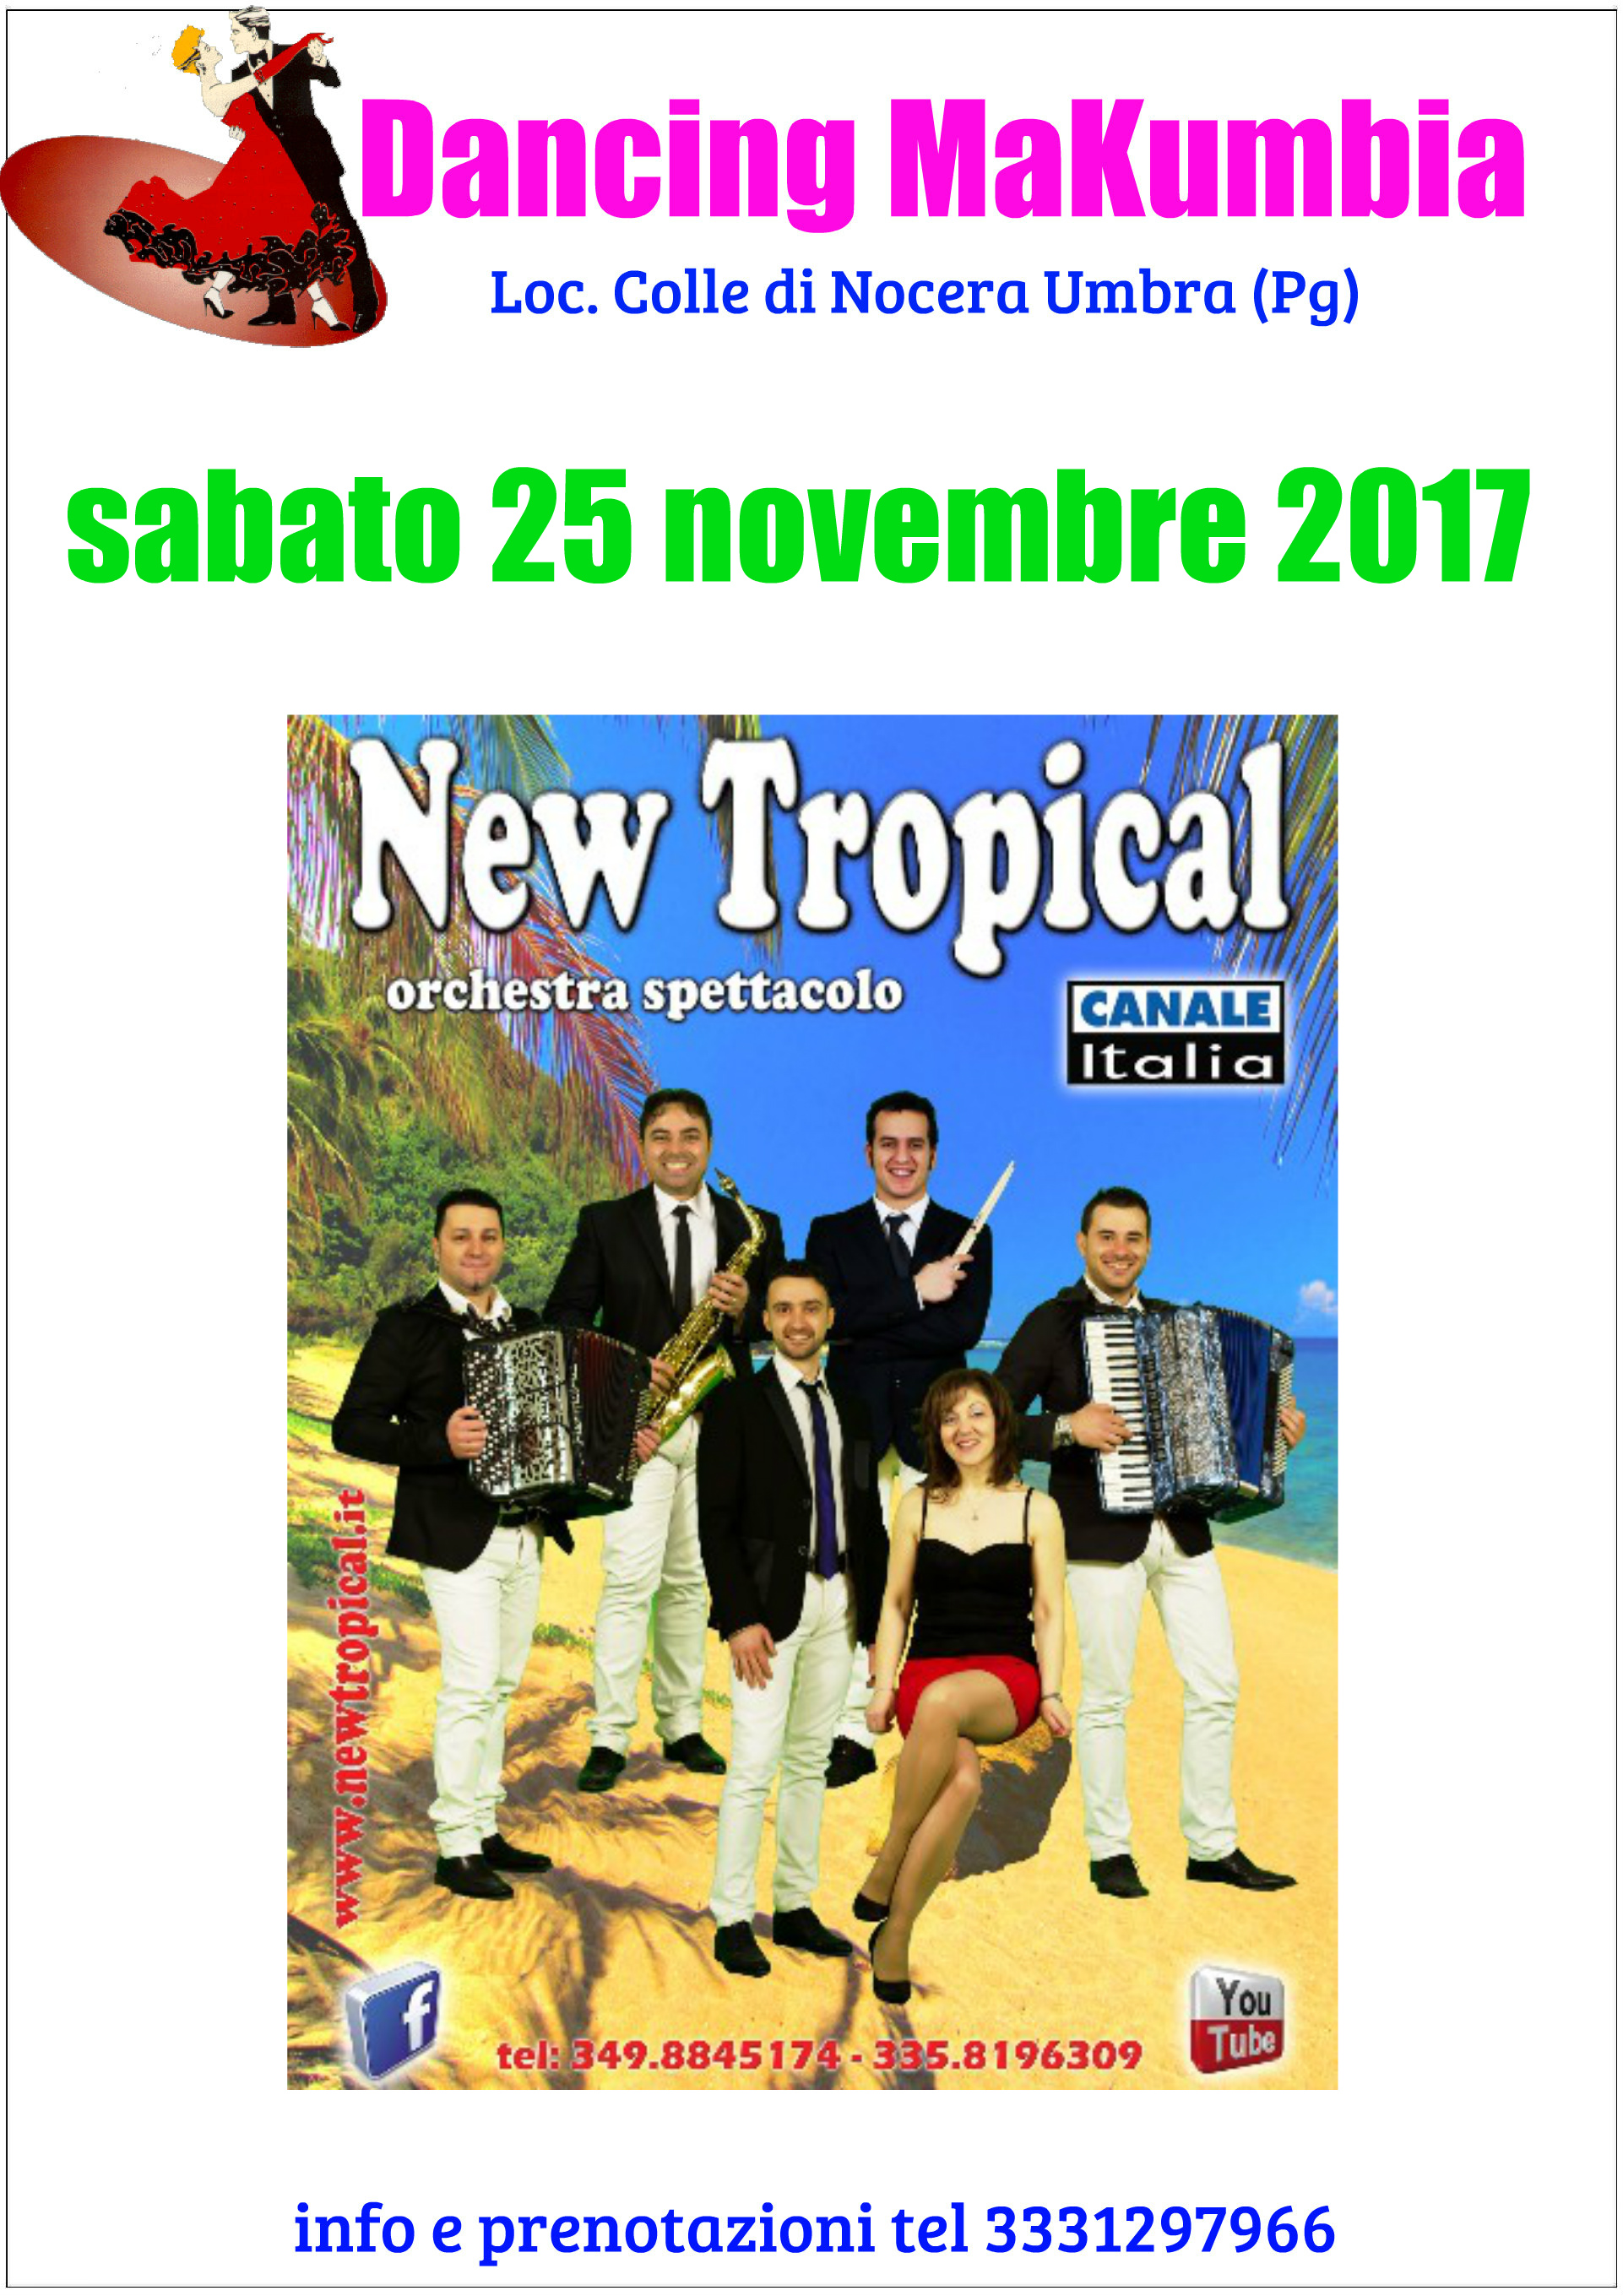 AL MAKUMBIA SI BALLA CON I NEW TROPICAL!!!!